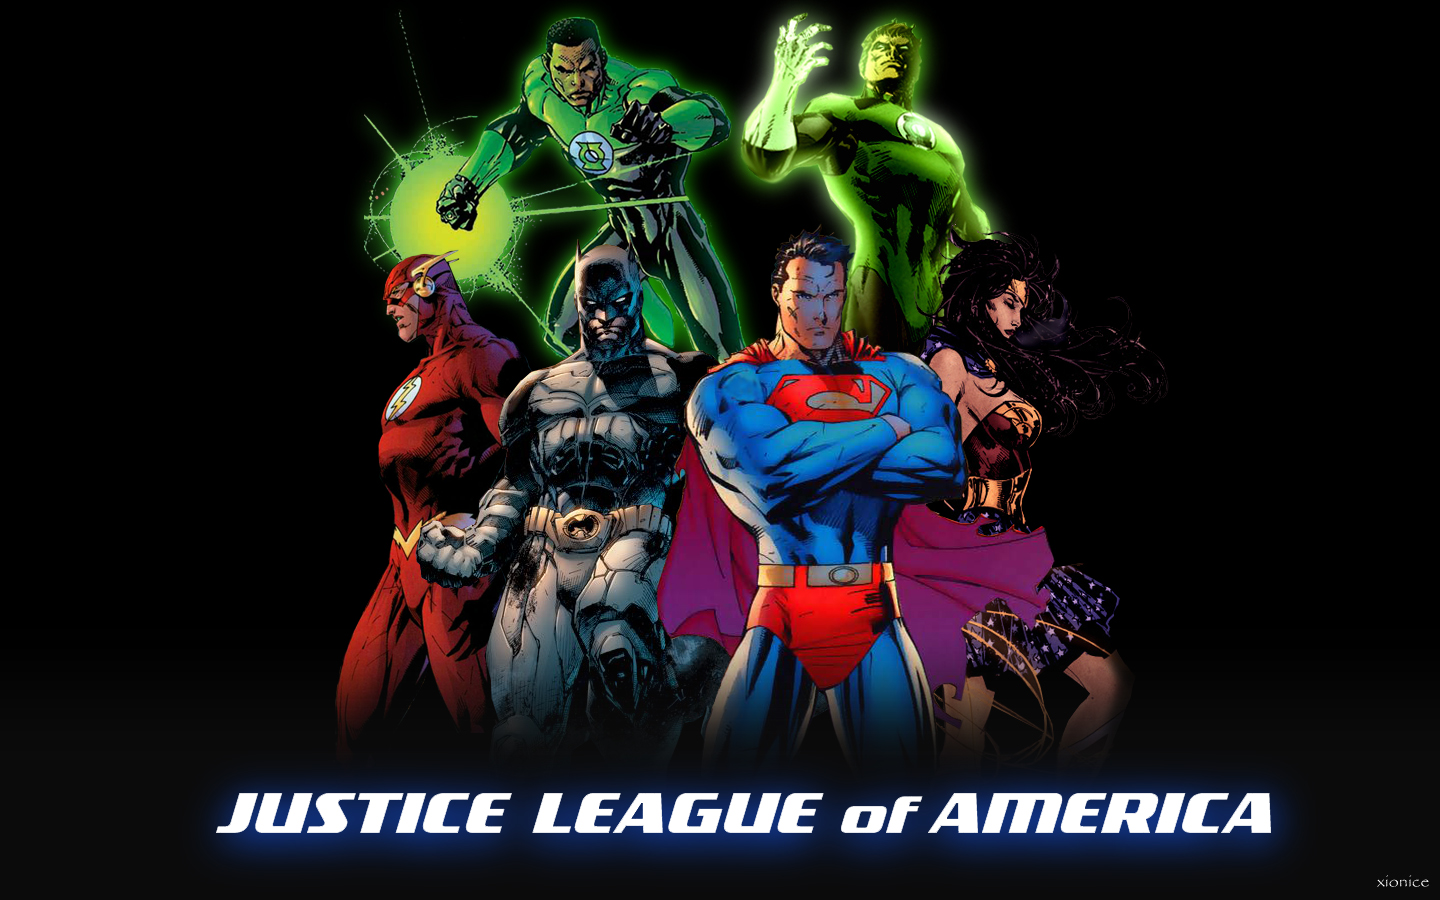 Justice League II by Xionice 1440x900